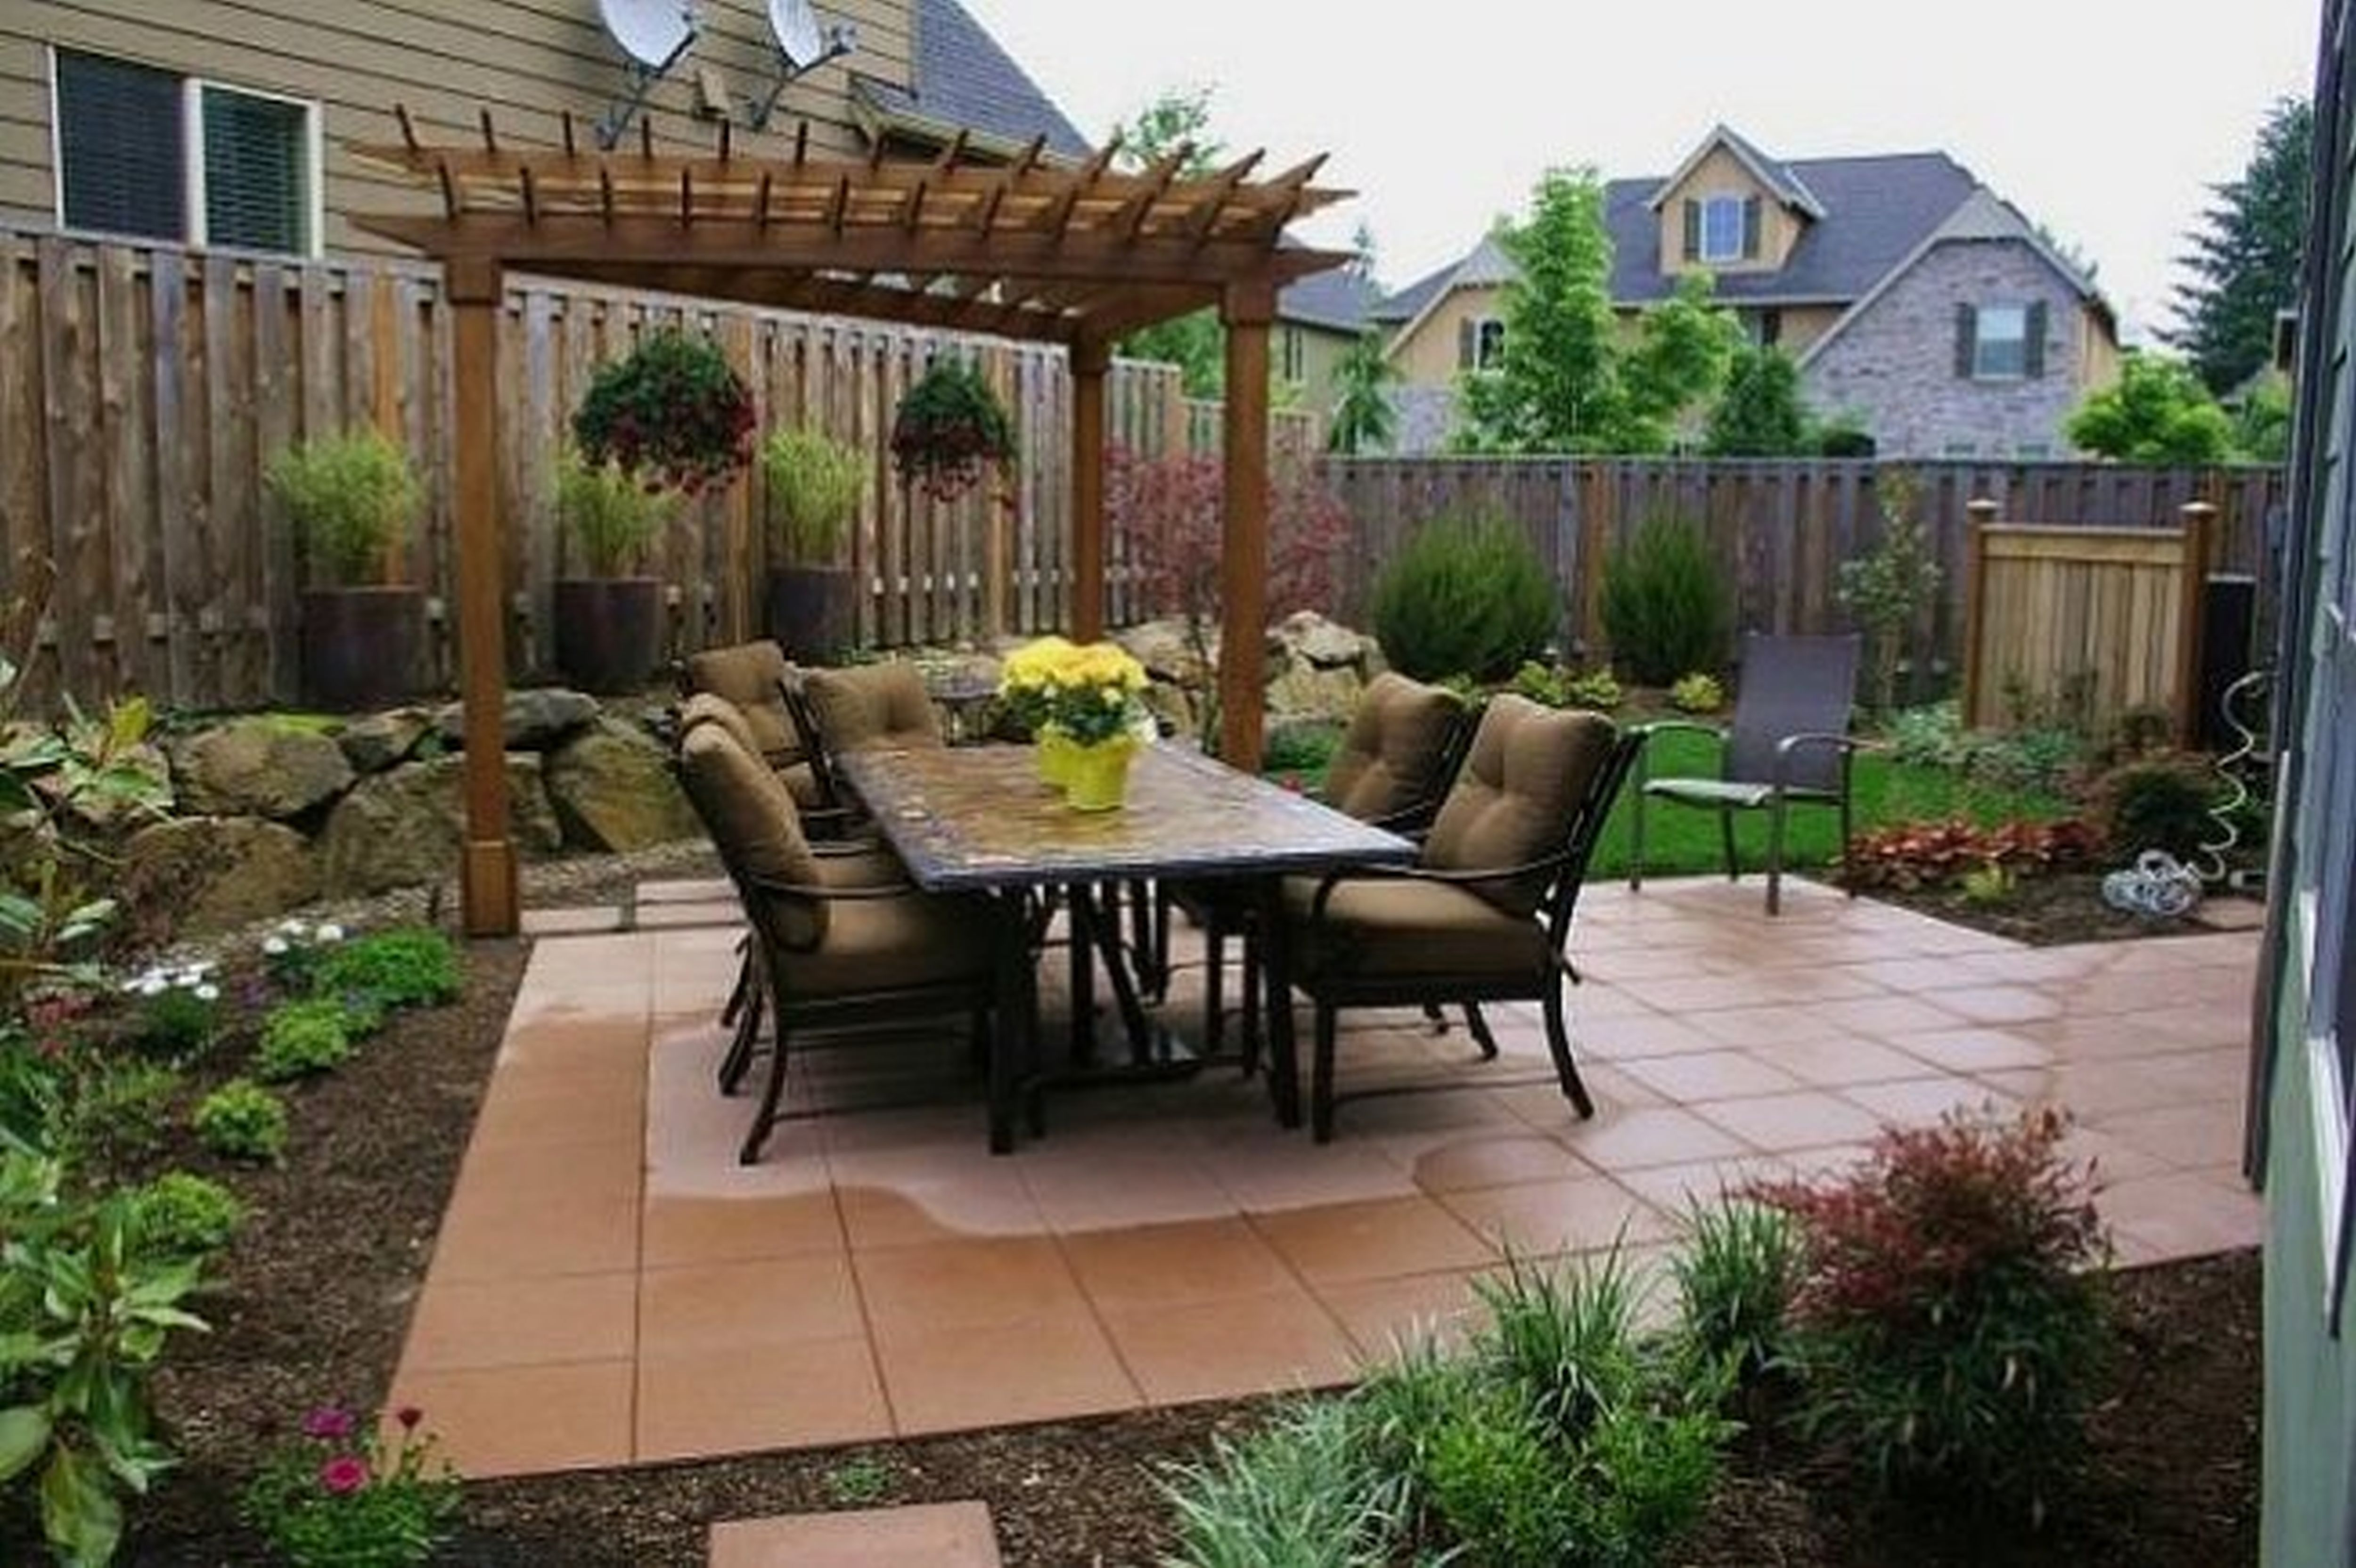 Easy Tips For Thomasville Outdoor Furniture Purchase ... on Front Range Outdoor Living id=91258